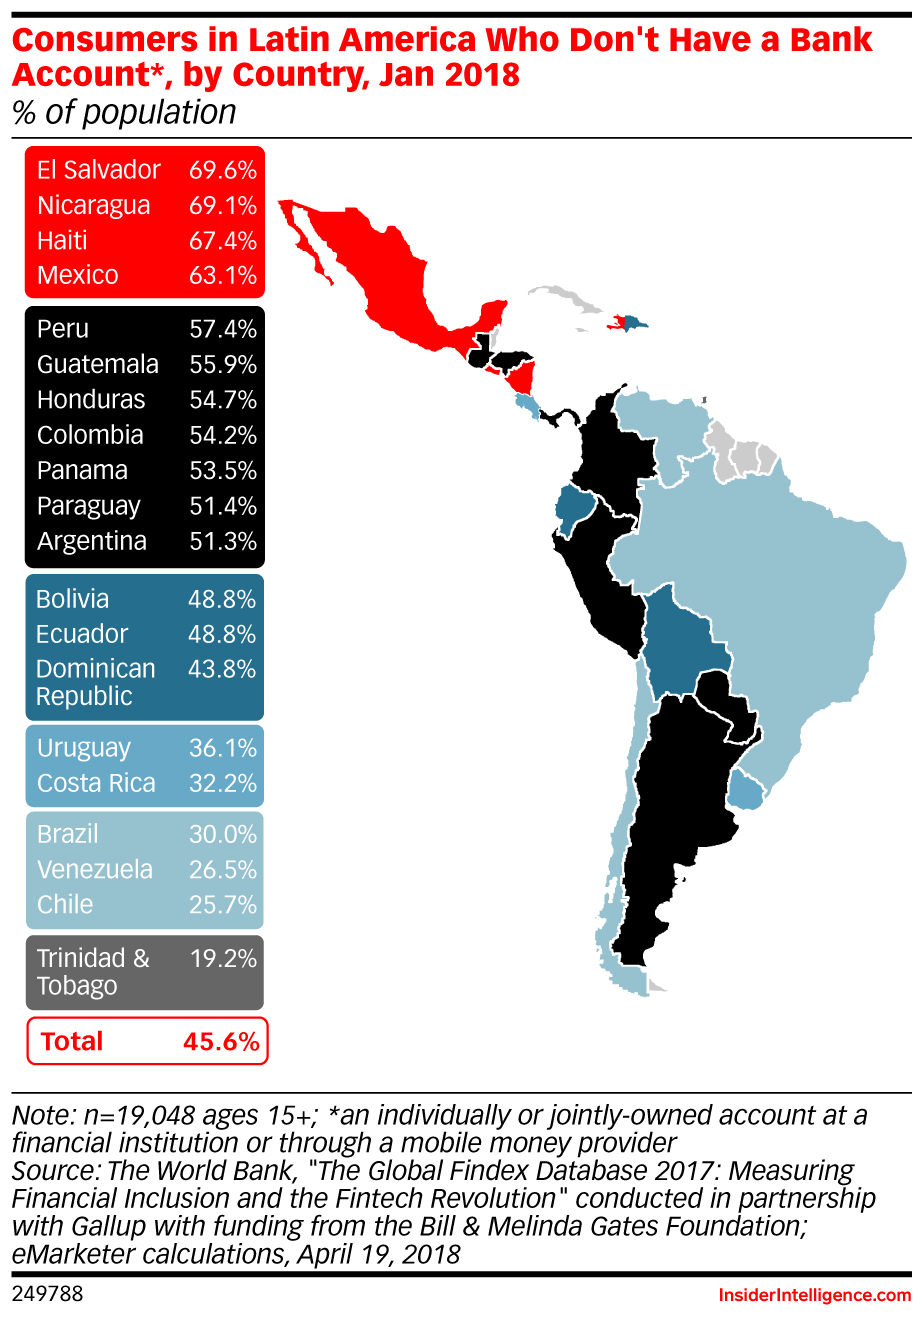 Consumers in Latin America Who Don't Have a Bank Account*, by Country, Jan 2018 (% of population)